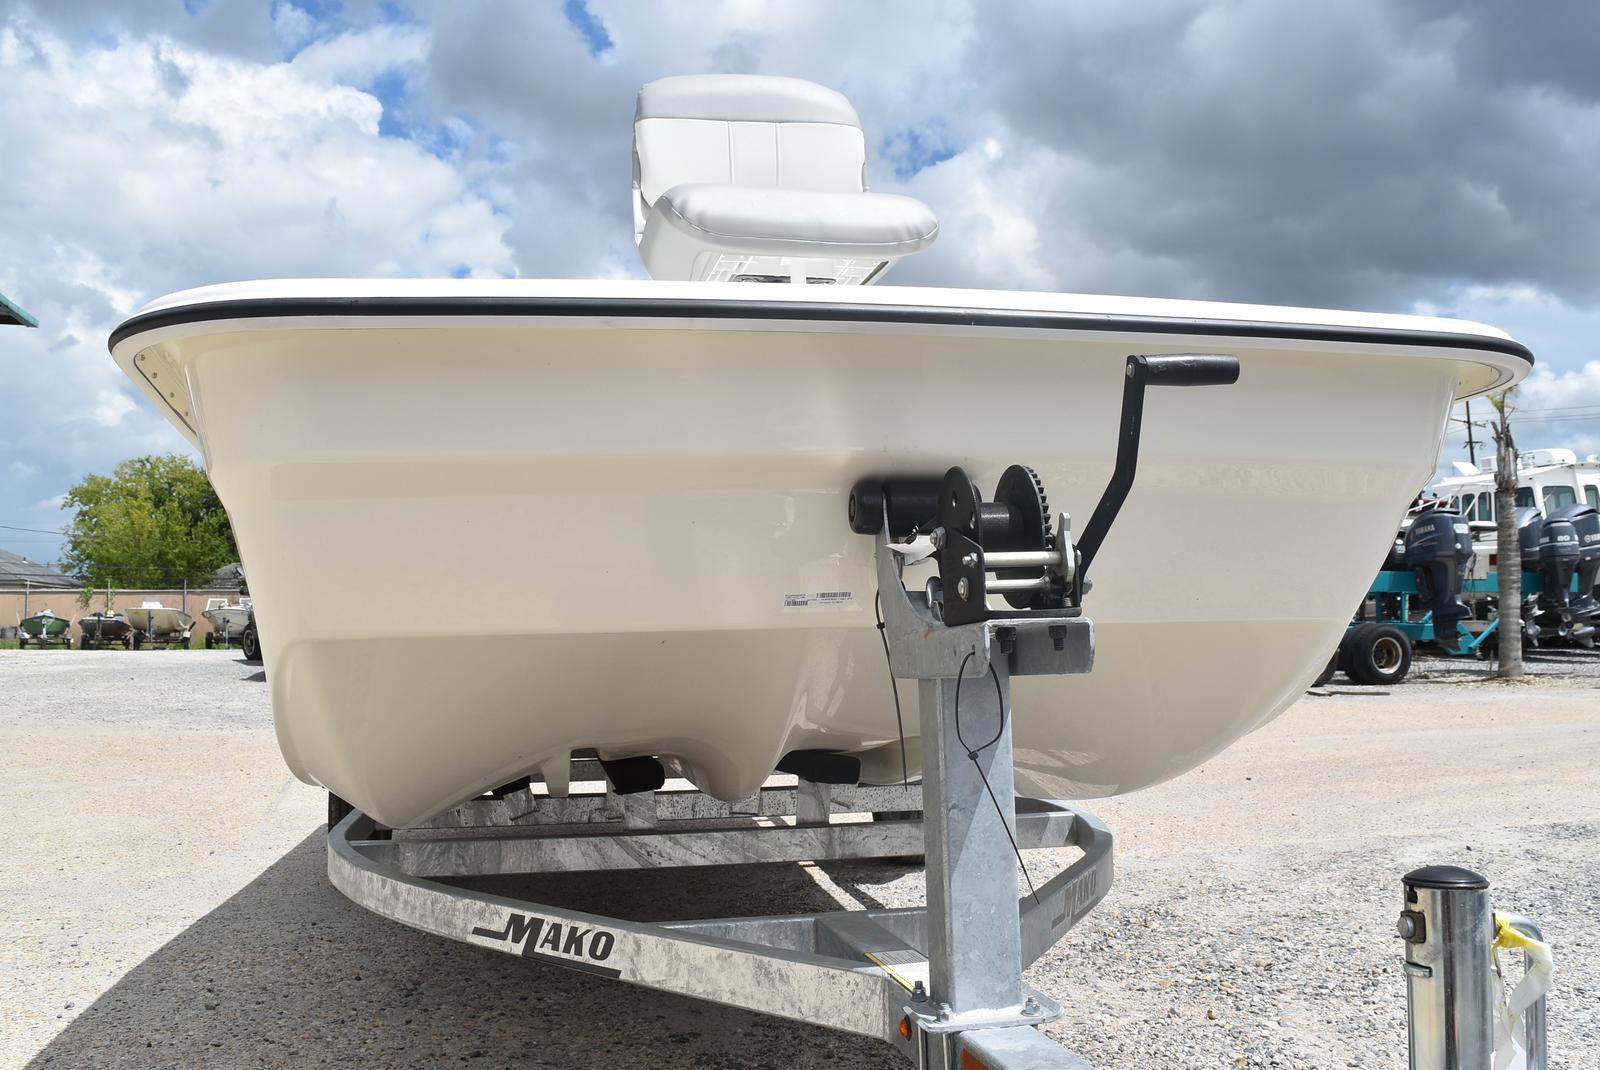 2020 Mako boat for sale, model of the boat is Pro Skiff 17, 75 ELPT & Image # 360 of 702